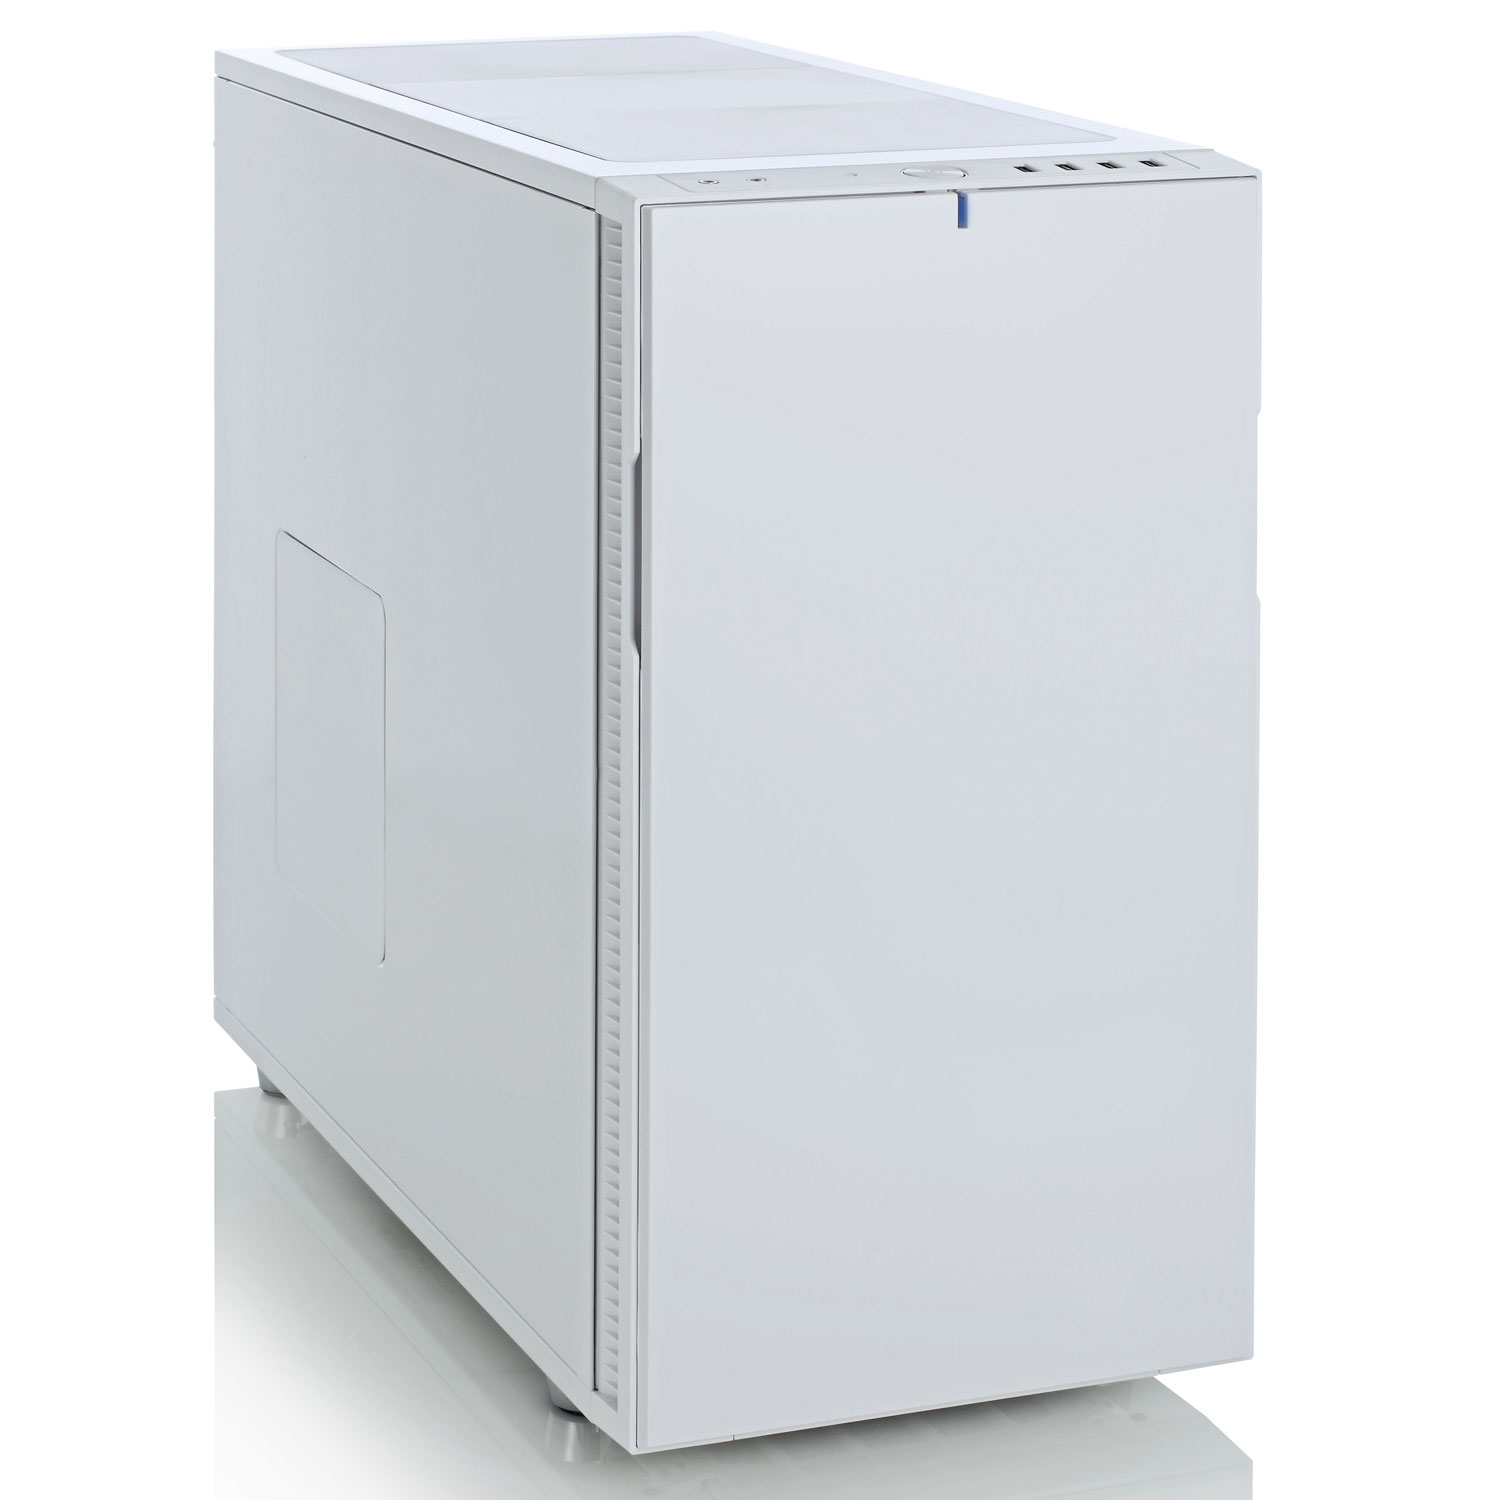 fractal design define r5 white bo tier pc fractal design sur. Black Bedroom Furniture Sets. Home Design Ideas